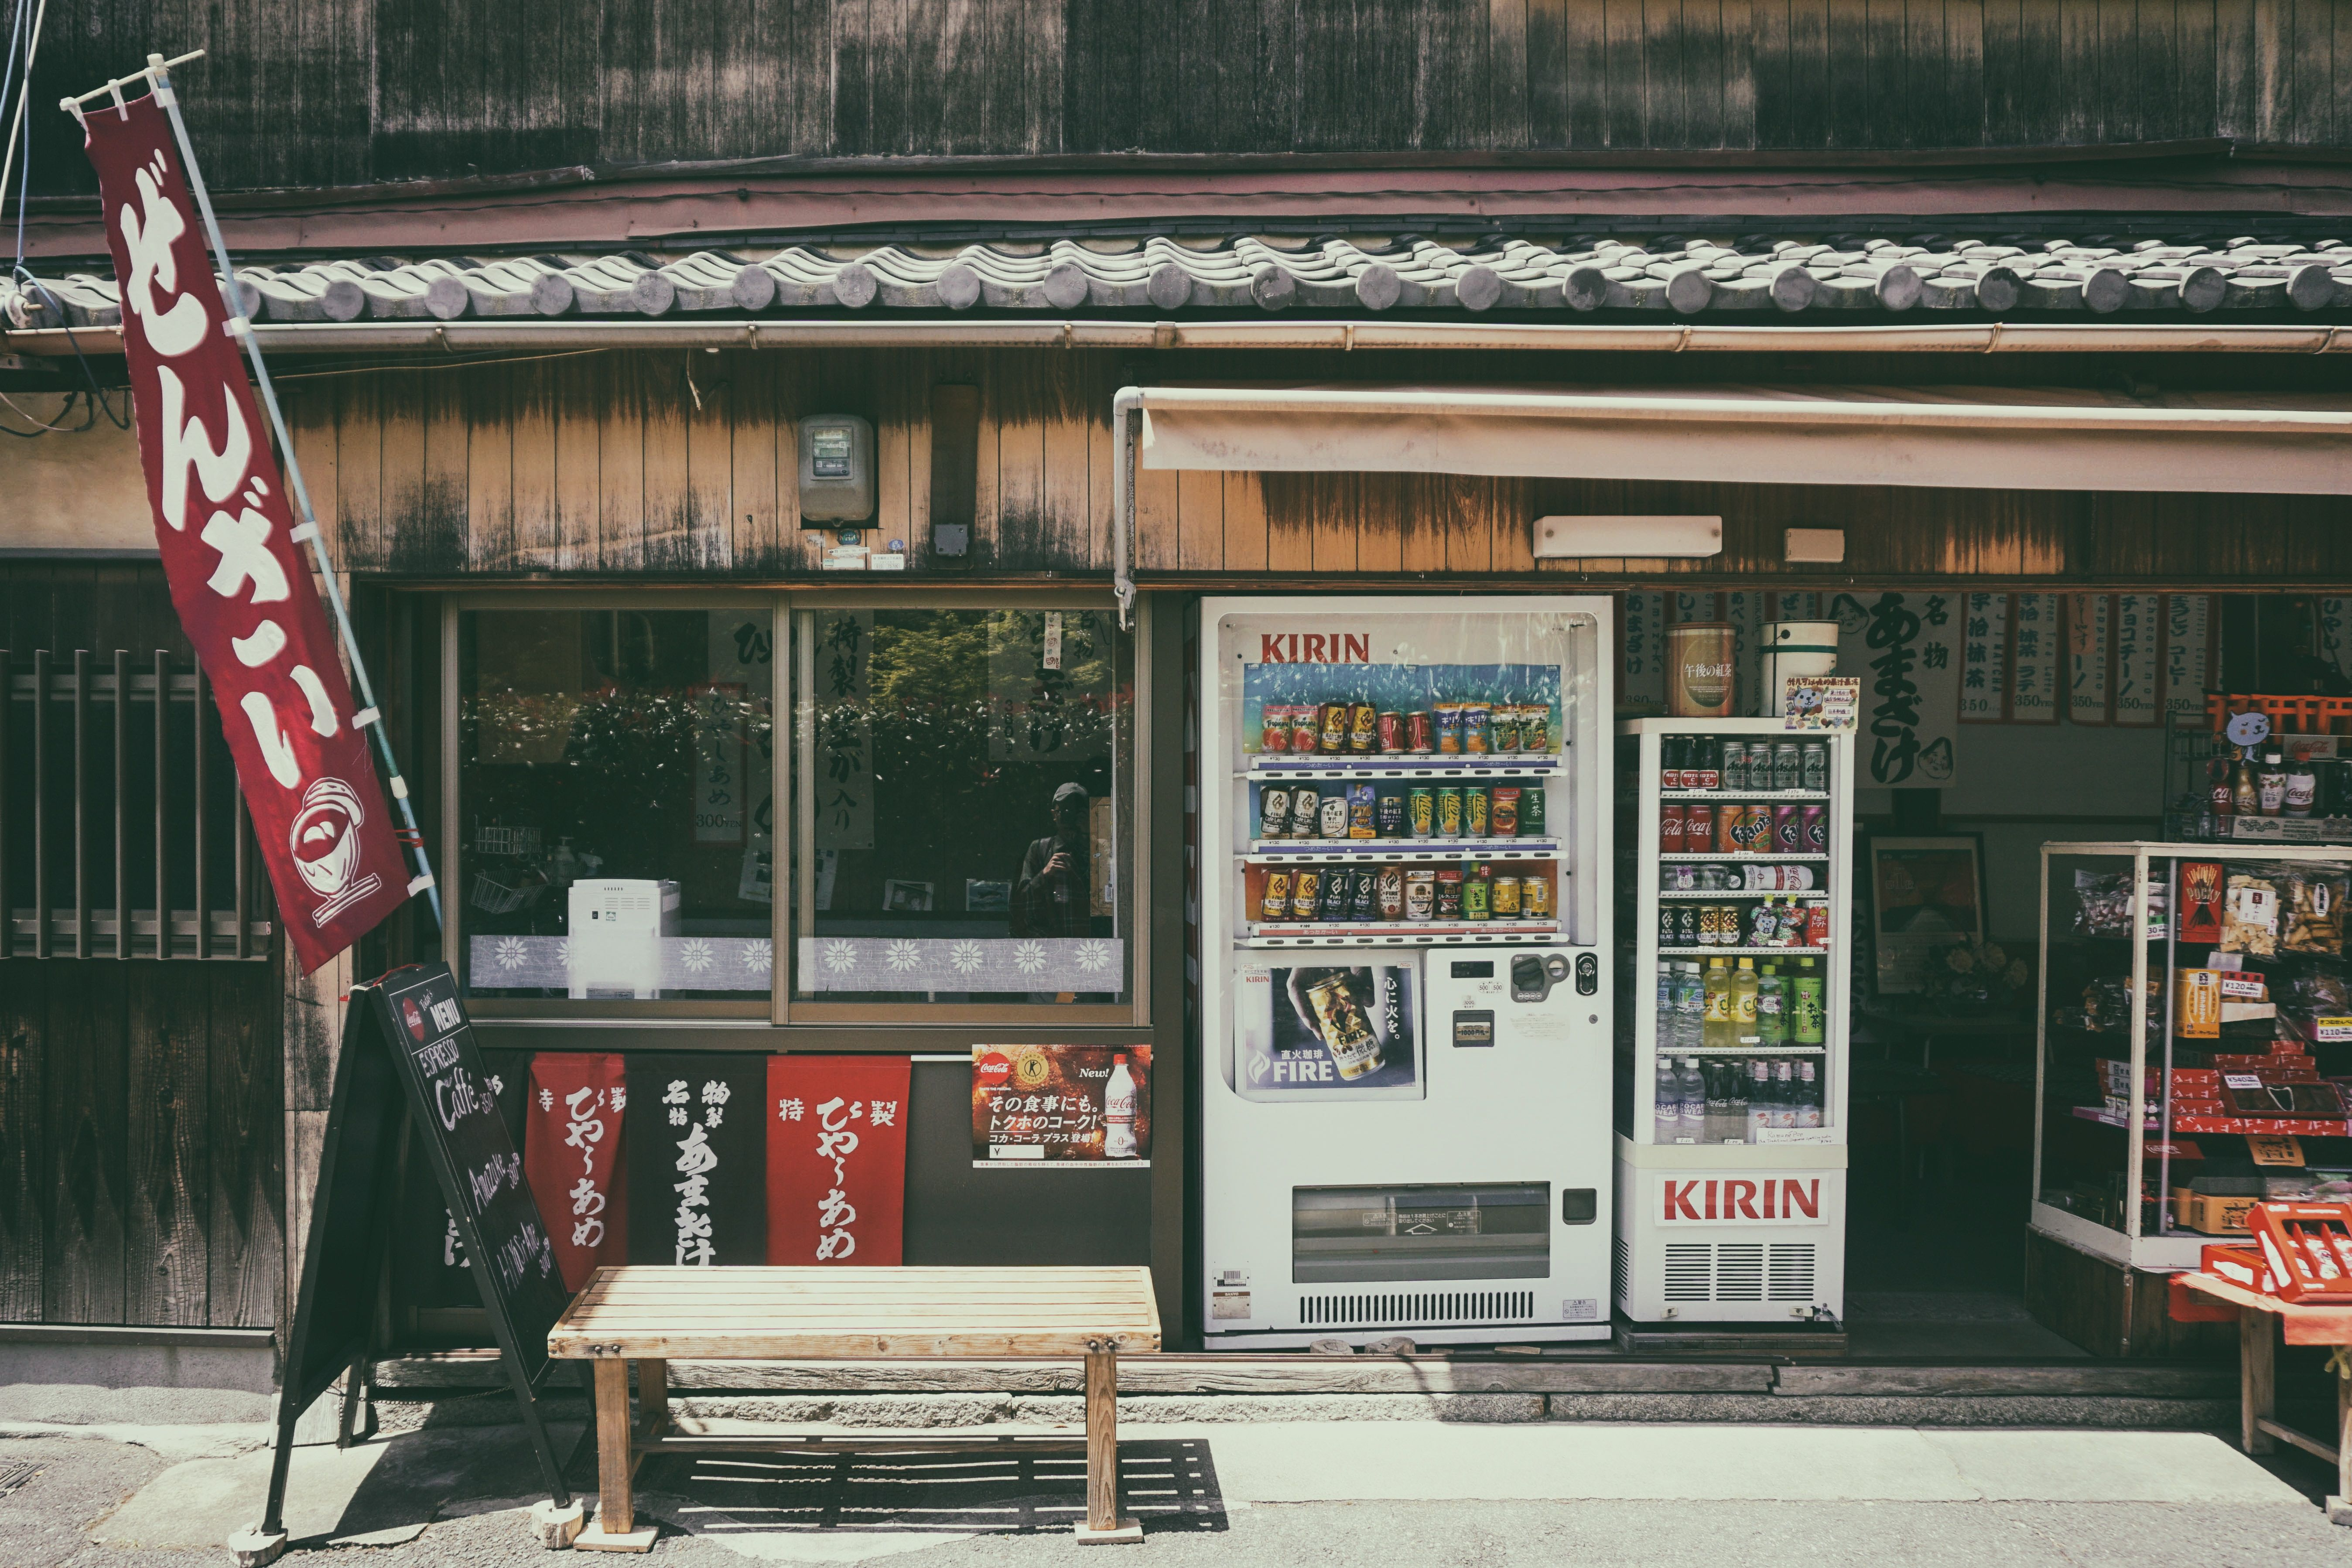 10 Super Unique Vending Machines You Can Find Only In Japan With Nearby Halal Food Information Https Japan Picture Scenic Travel Internet Marketing Strategy